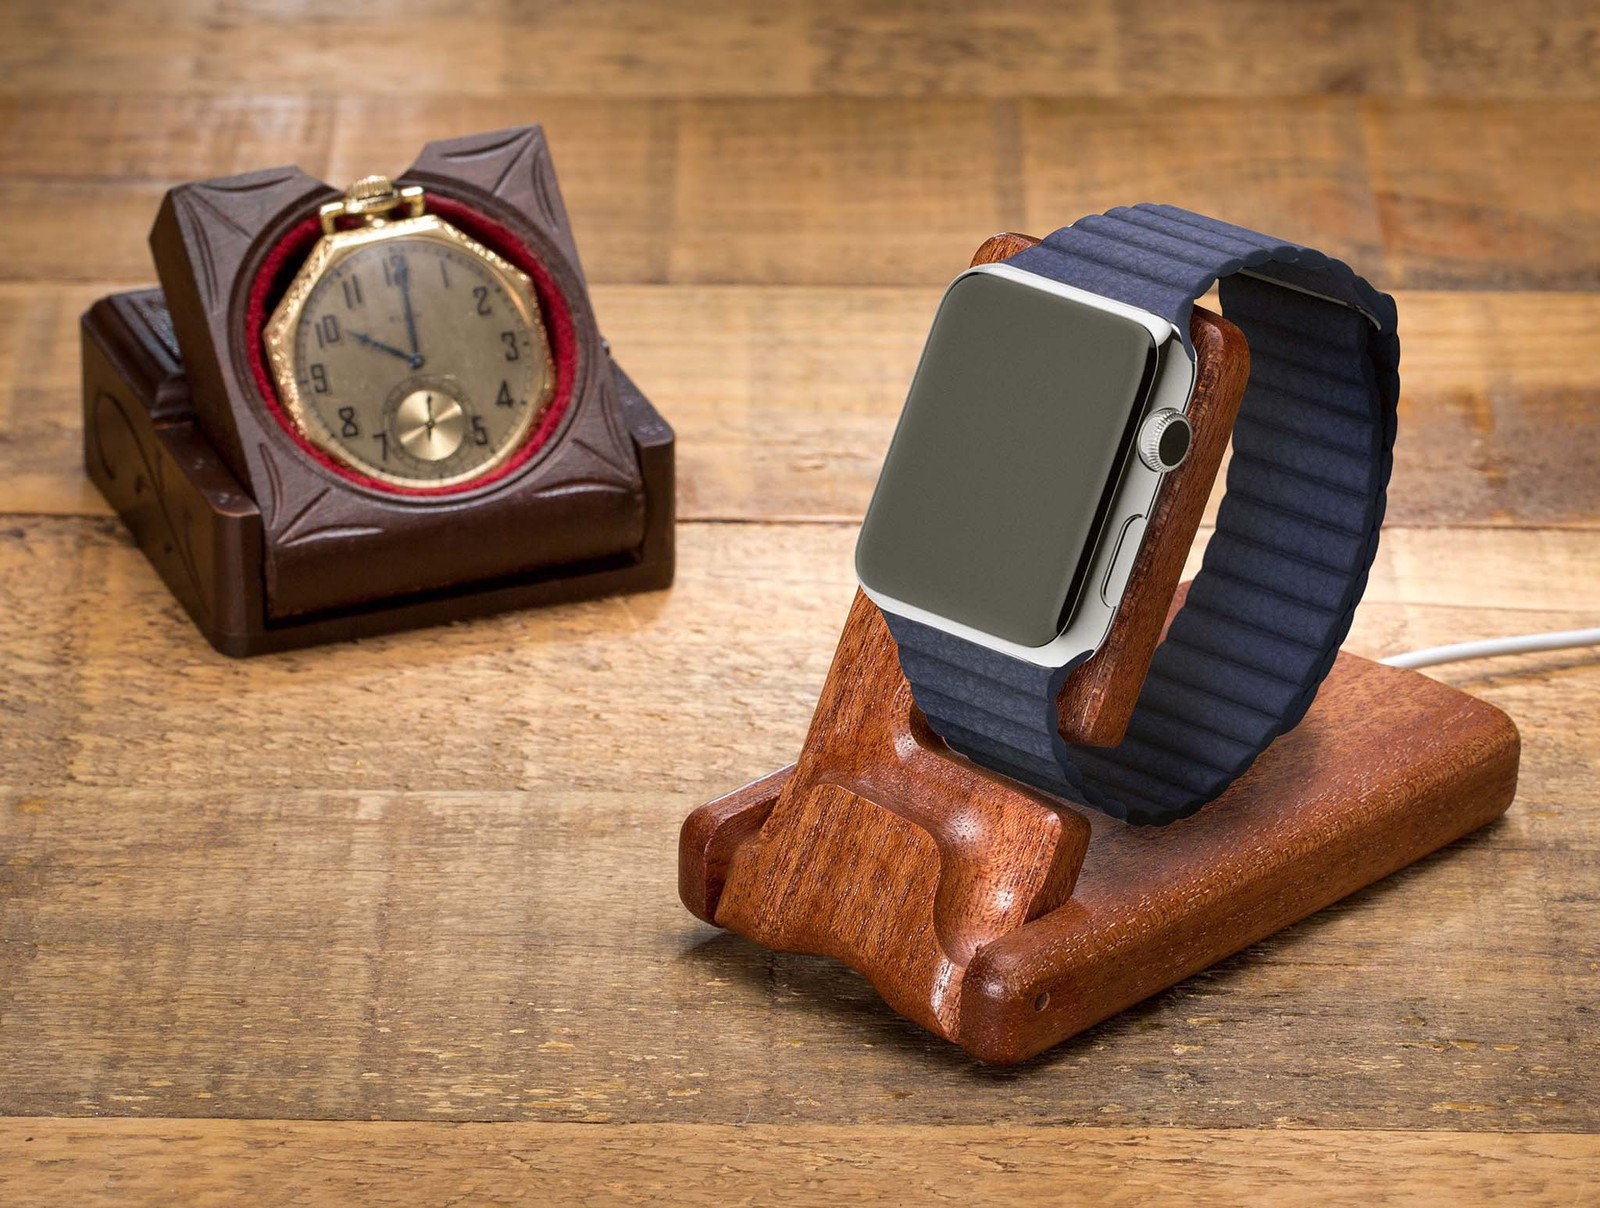 Pad Amp Quill Gets In On The Apple Watch Charging Stands